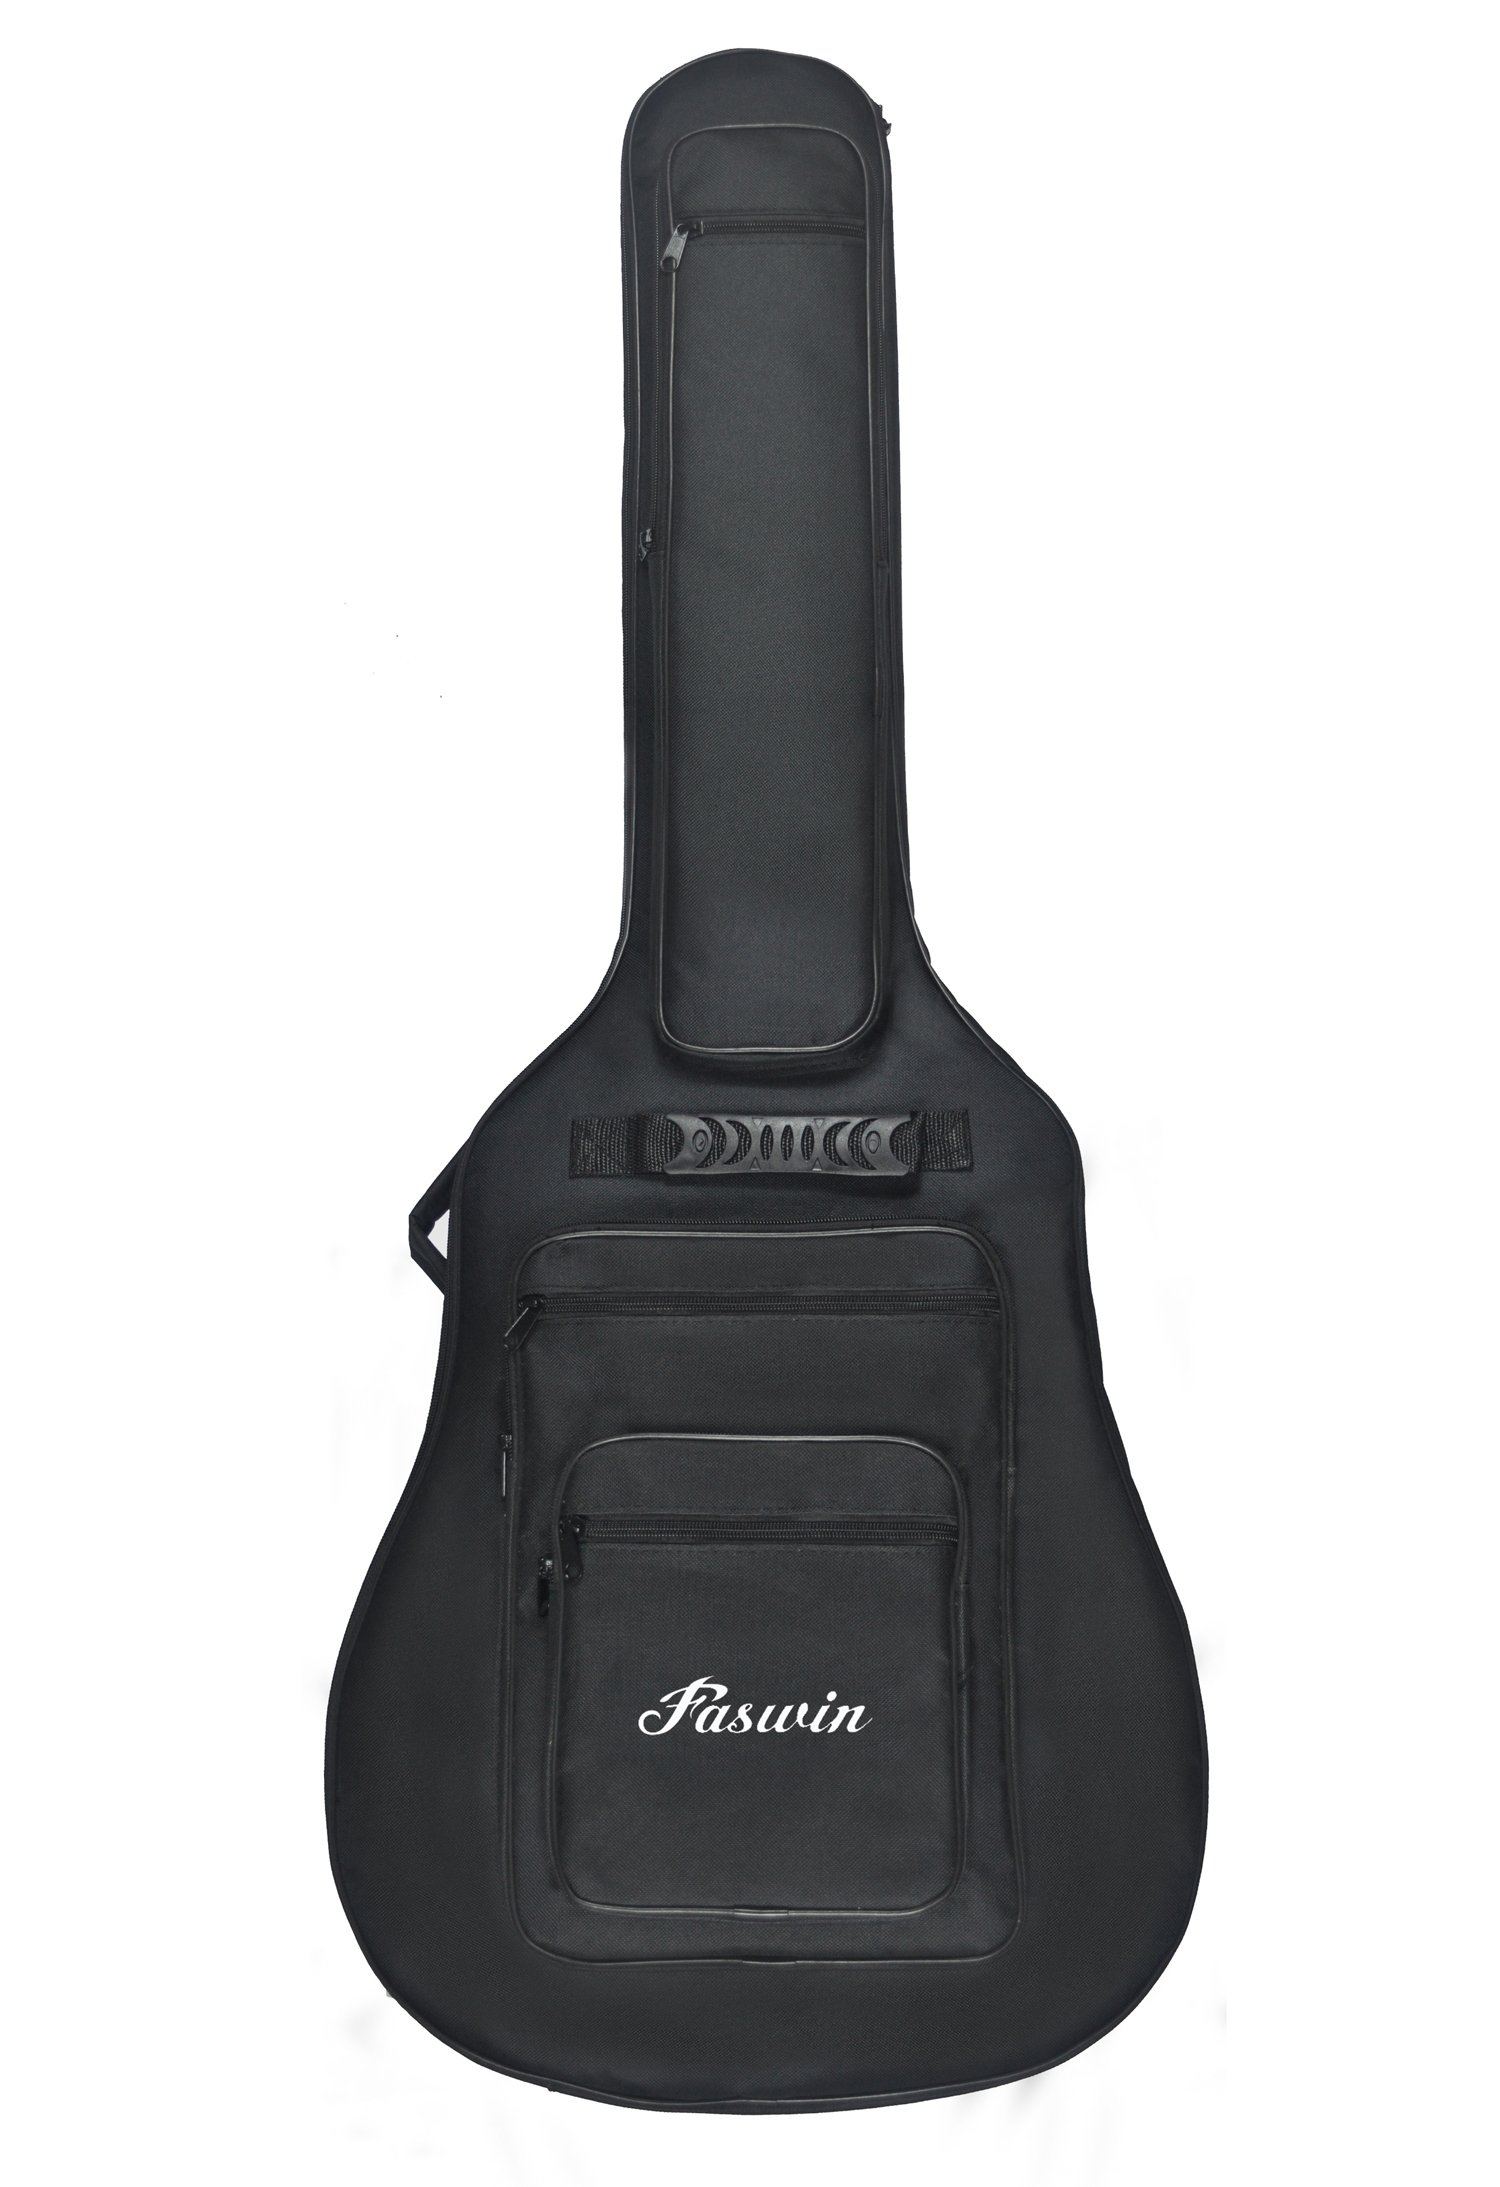 Faswin 41 Inch Acoustic Guitar Padded Gig Bag with 6 Pockets, Pick Sampler and Guitar Strap by Faswin